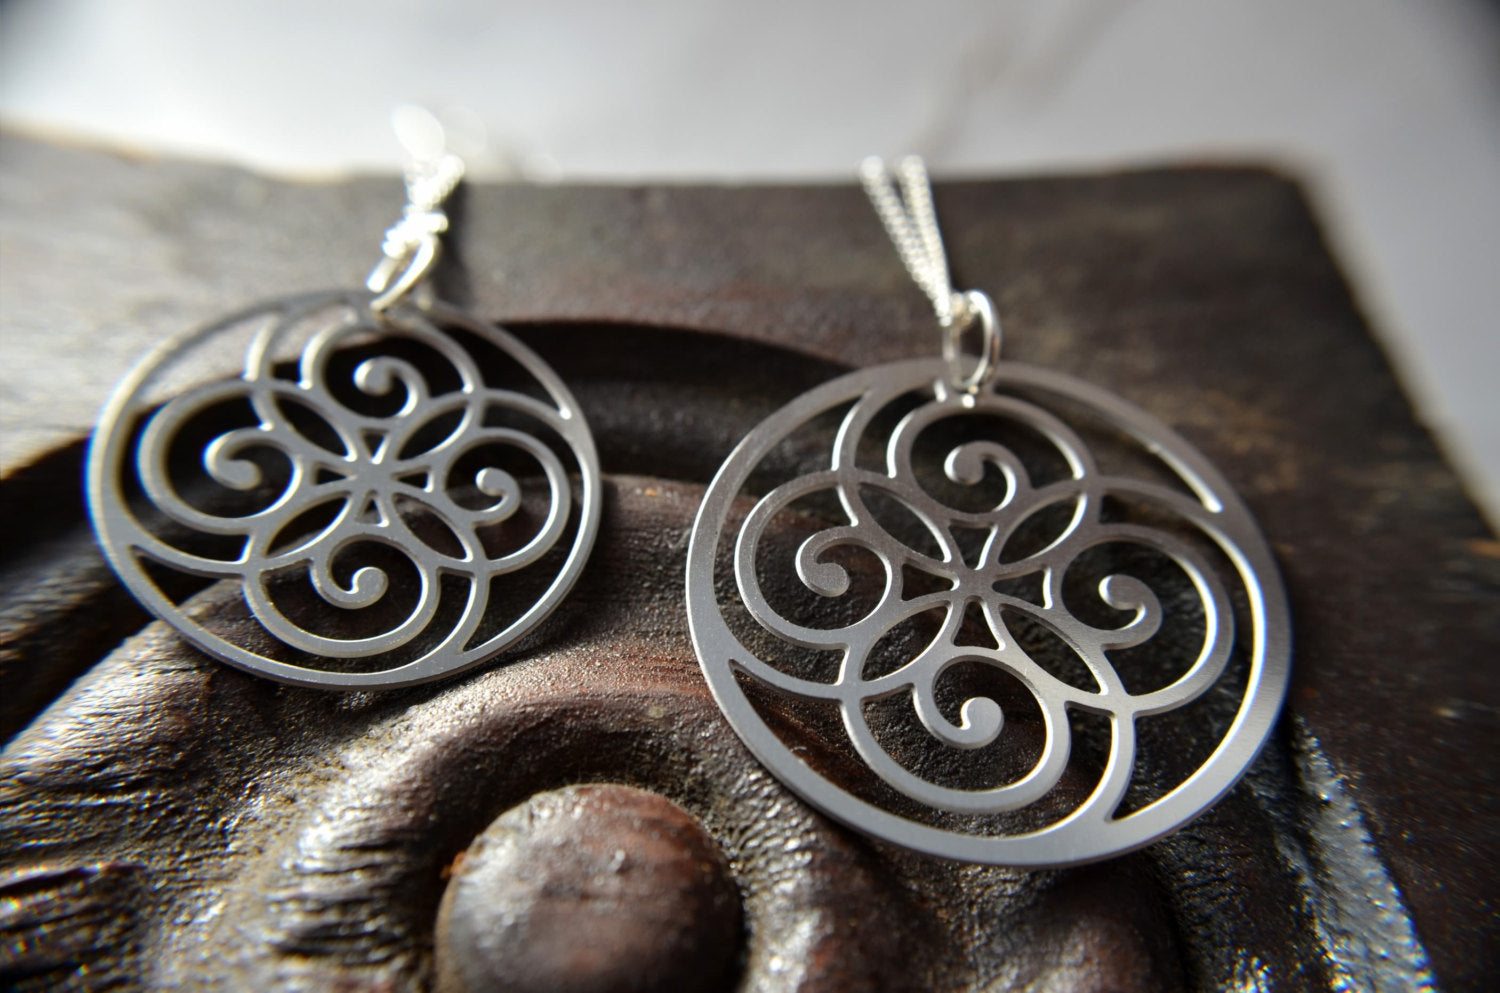 Spiral Circle Pendant & Earrings in Stainless Steel - Zip & Mos